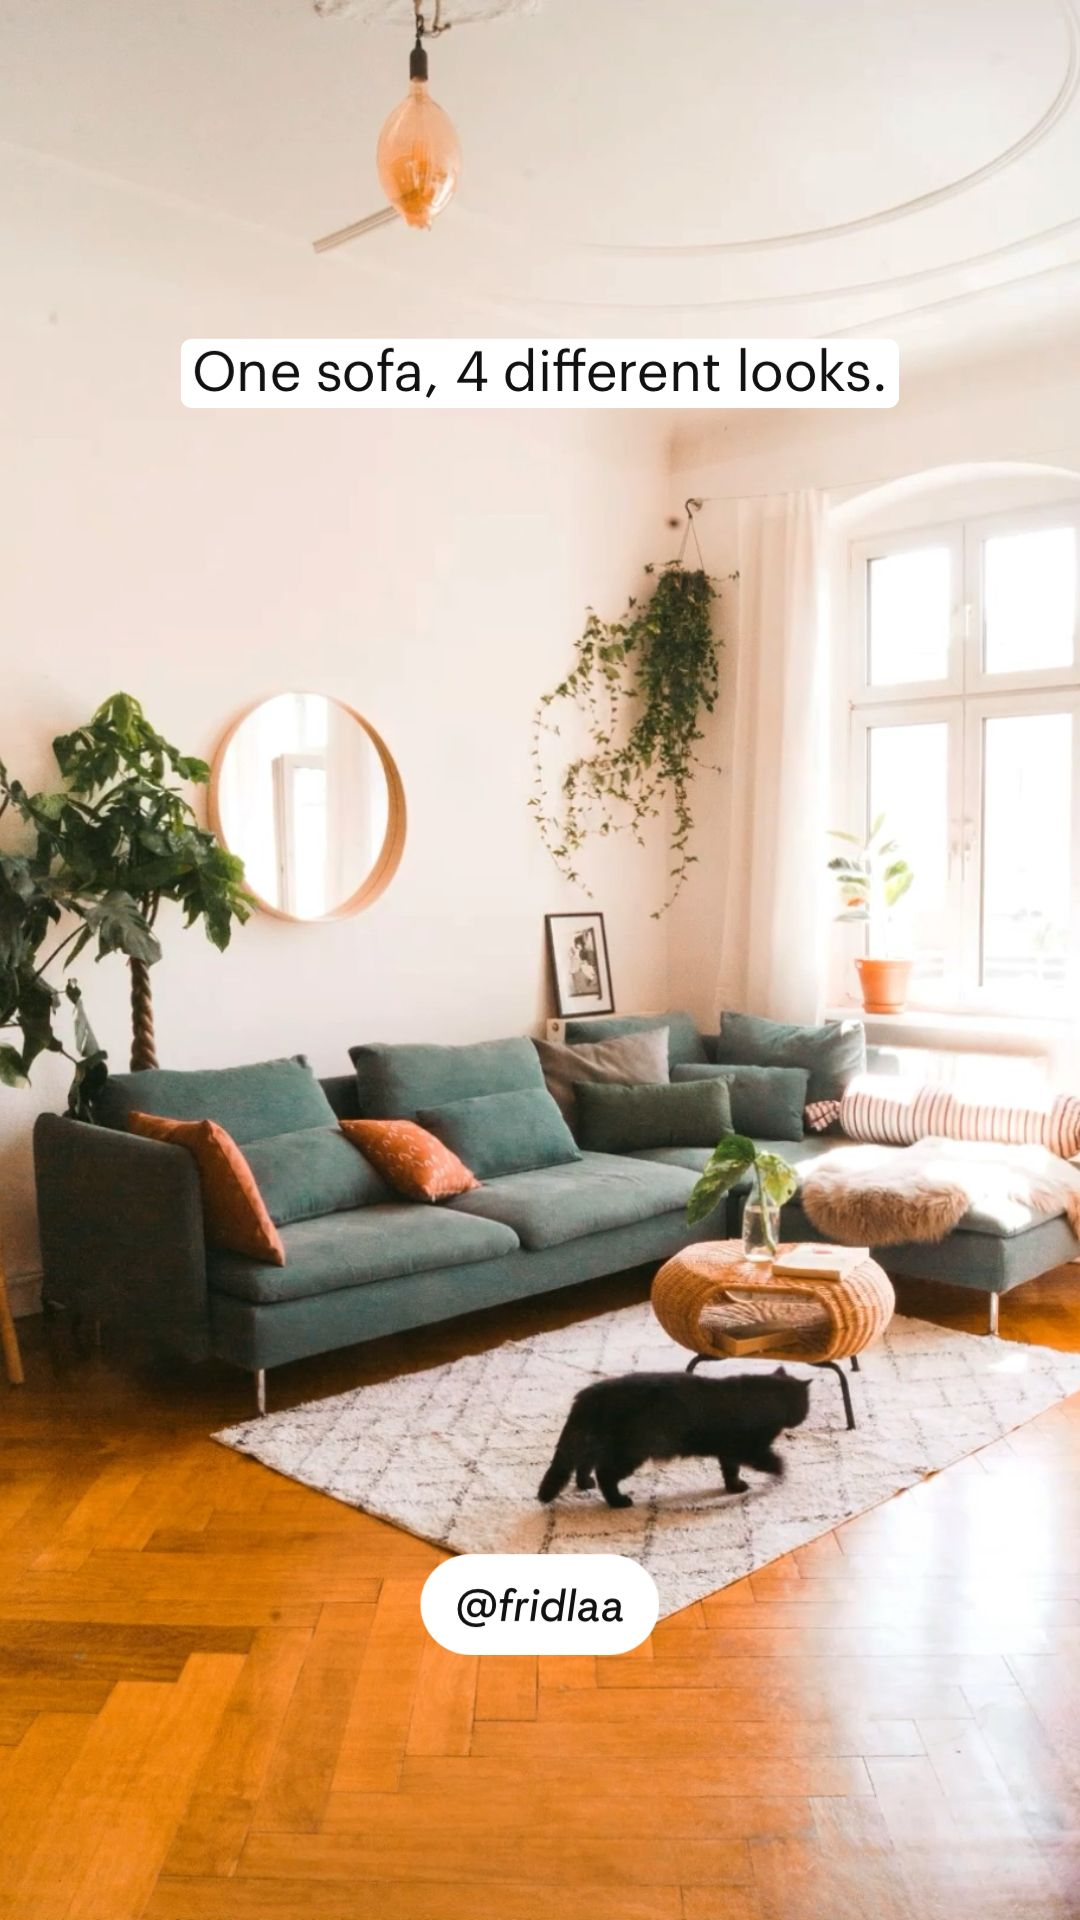 One sofa, 4 different looks.